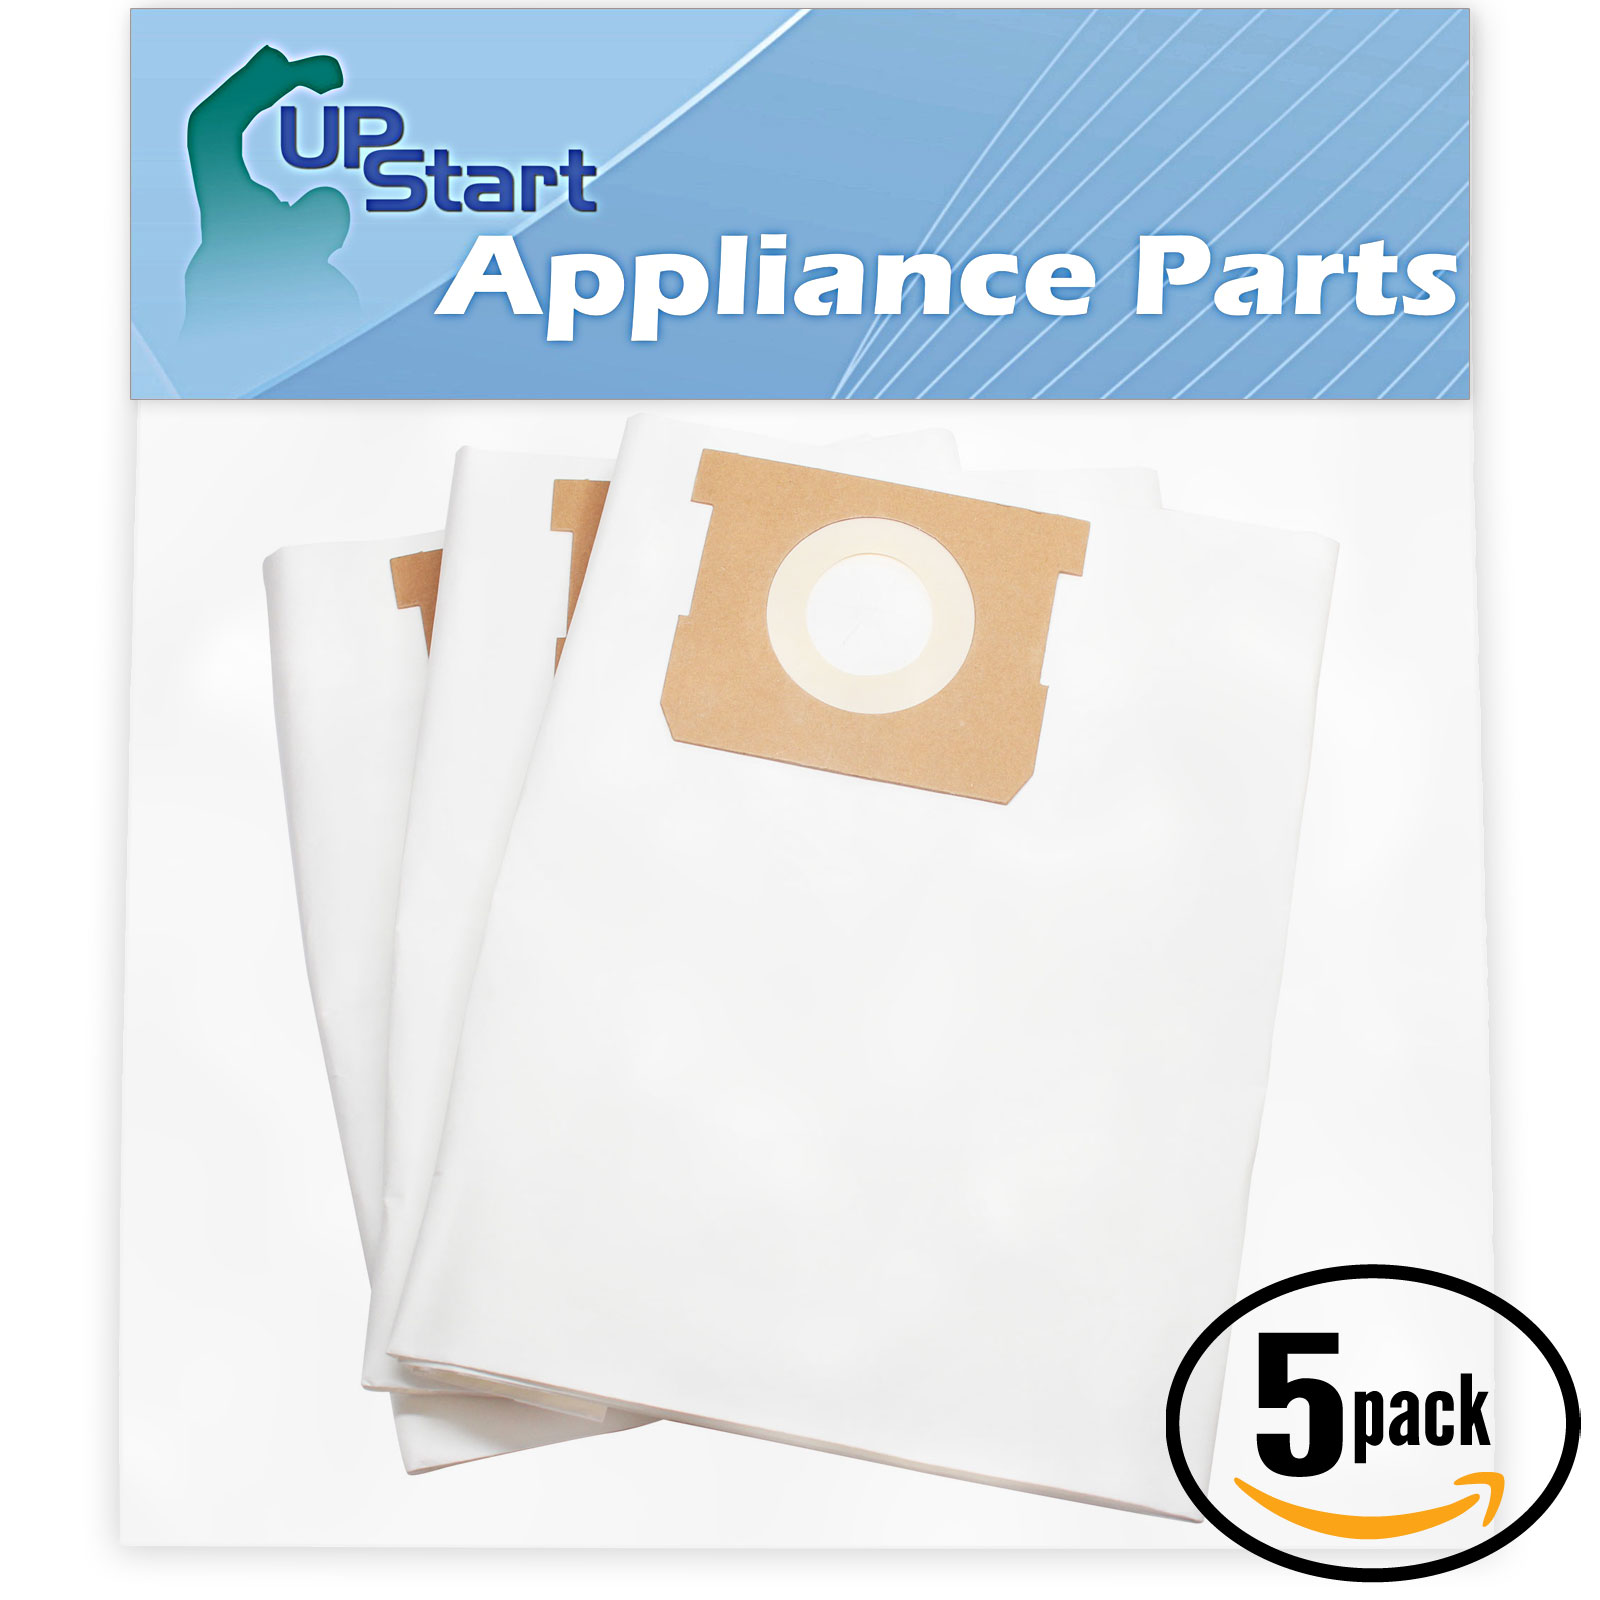 15 Replacement Shop-Vac Heavy Duty Portable 587-24-10 Vacuum Bags  - Compatible Shop-Vac 90661 Vacuum Bags (5-Pack, 3 Bags Per Pack)